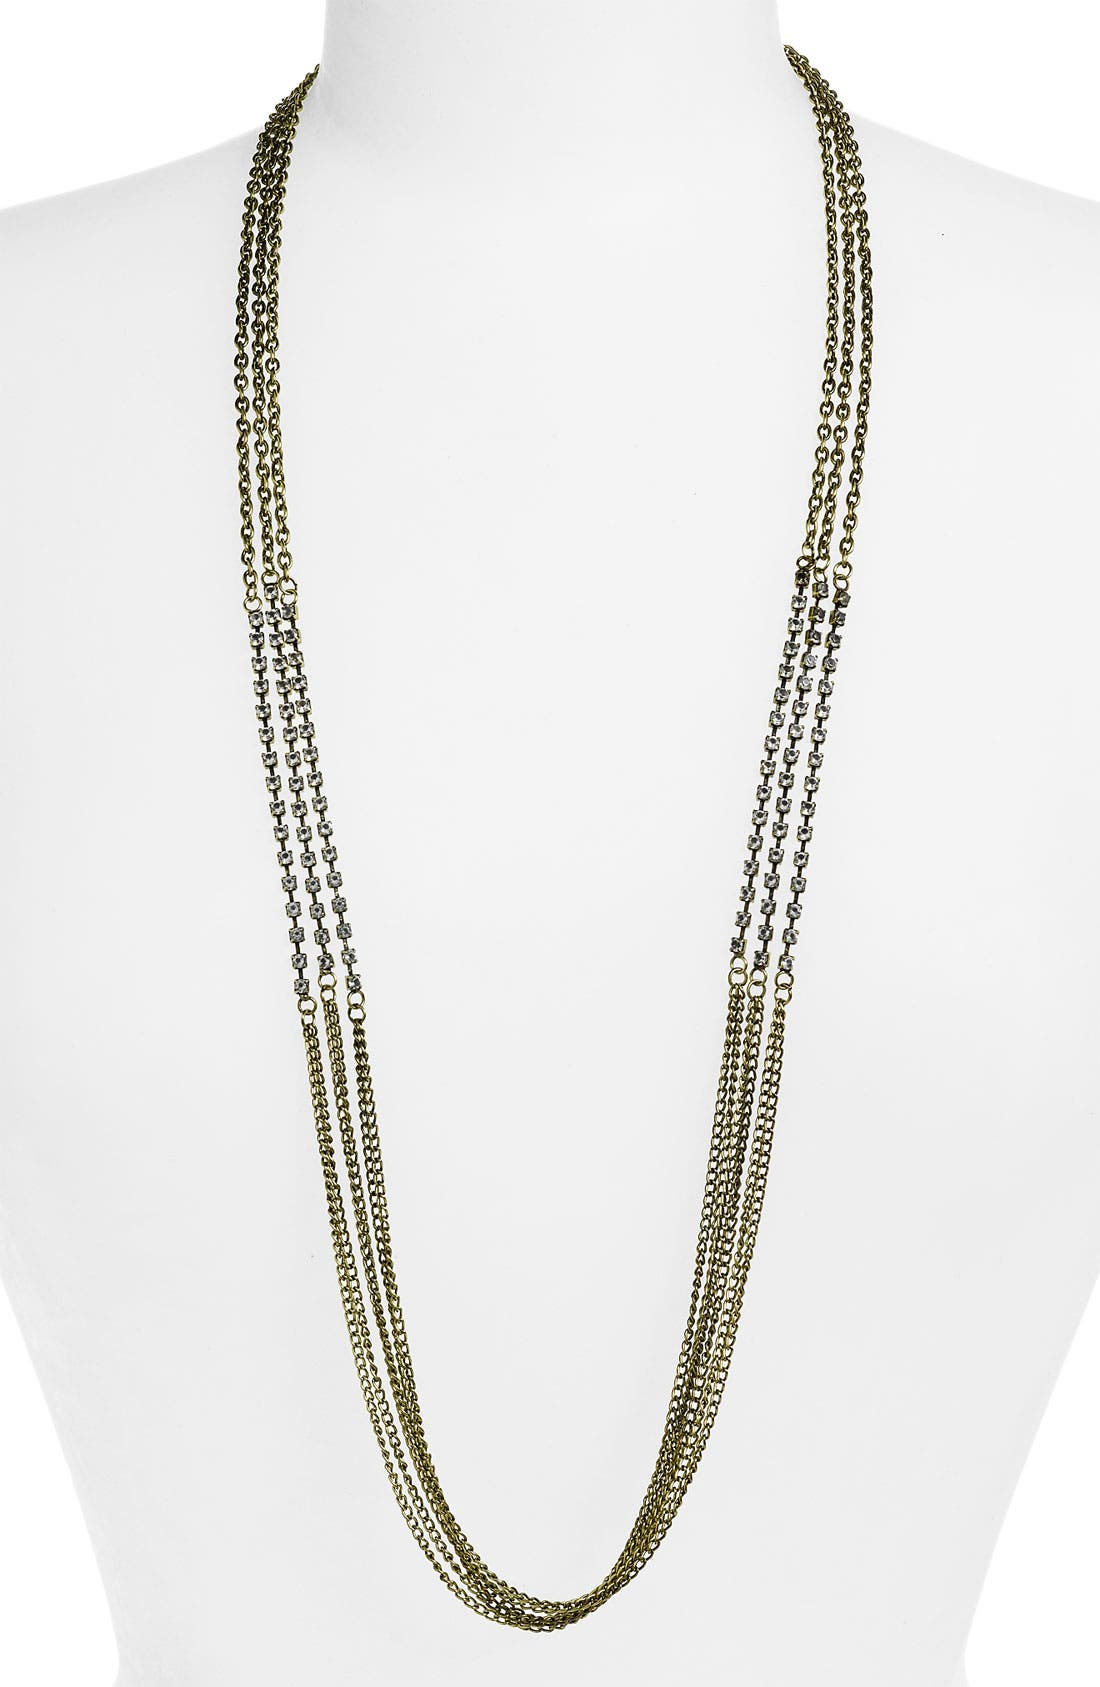 Alternate Image 1 Selected - Stephan & Co. Triple Row Chain & Rhinestone Necklace